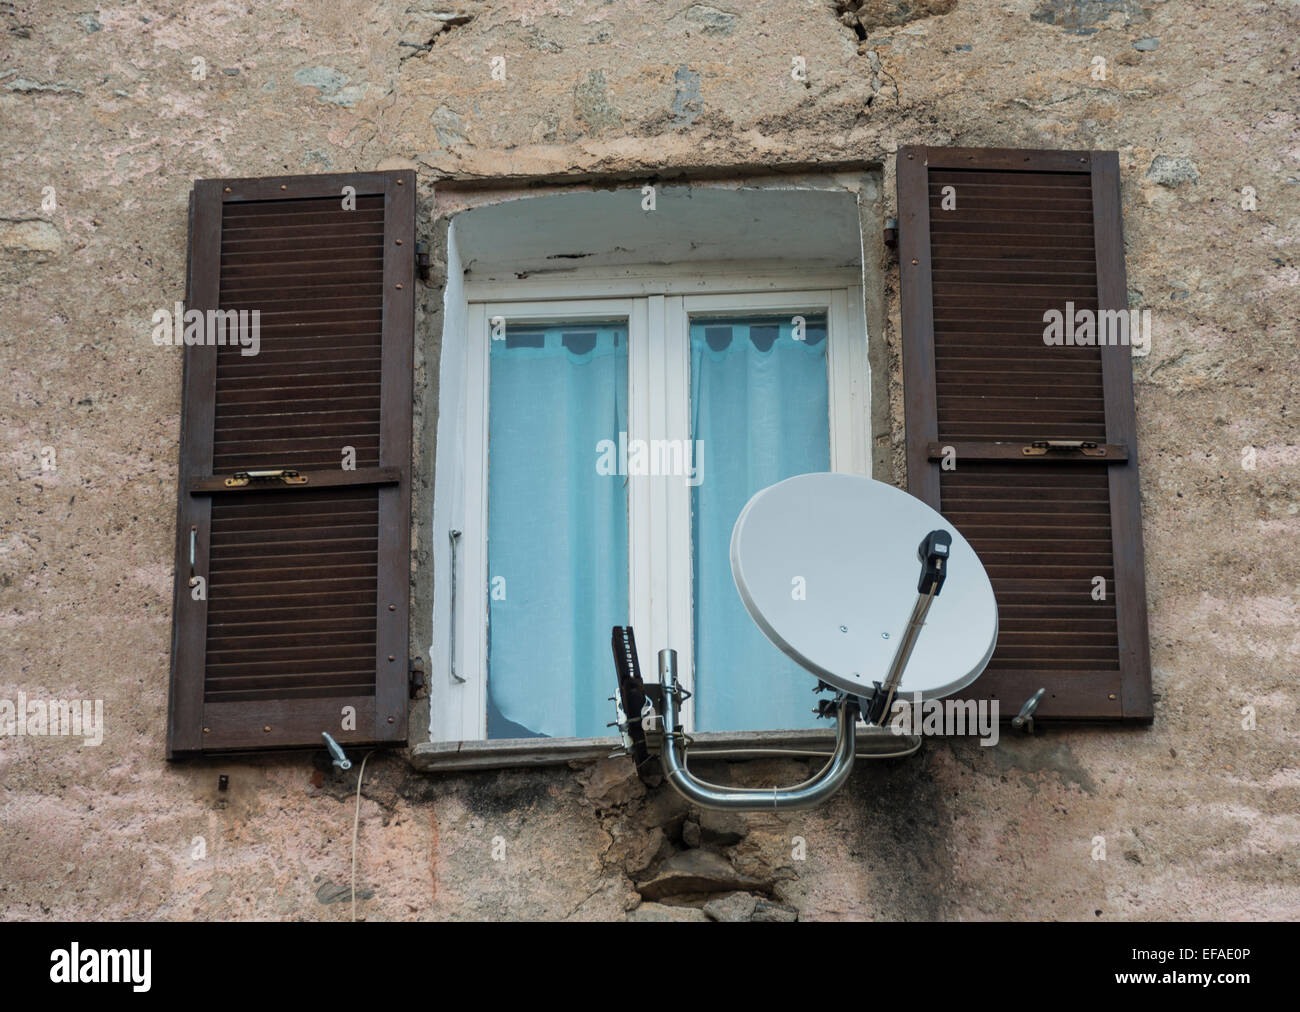 Window in a dilapidated building with satellite dish and open shutters, Corte, Corsica, France - Stock Image